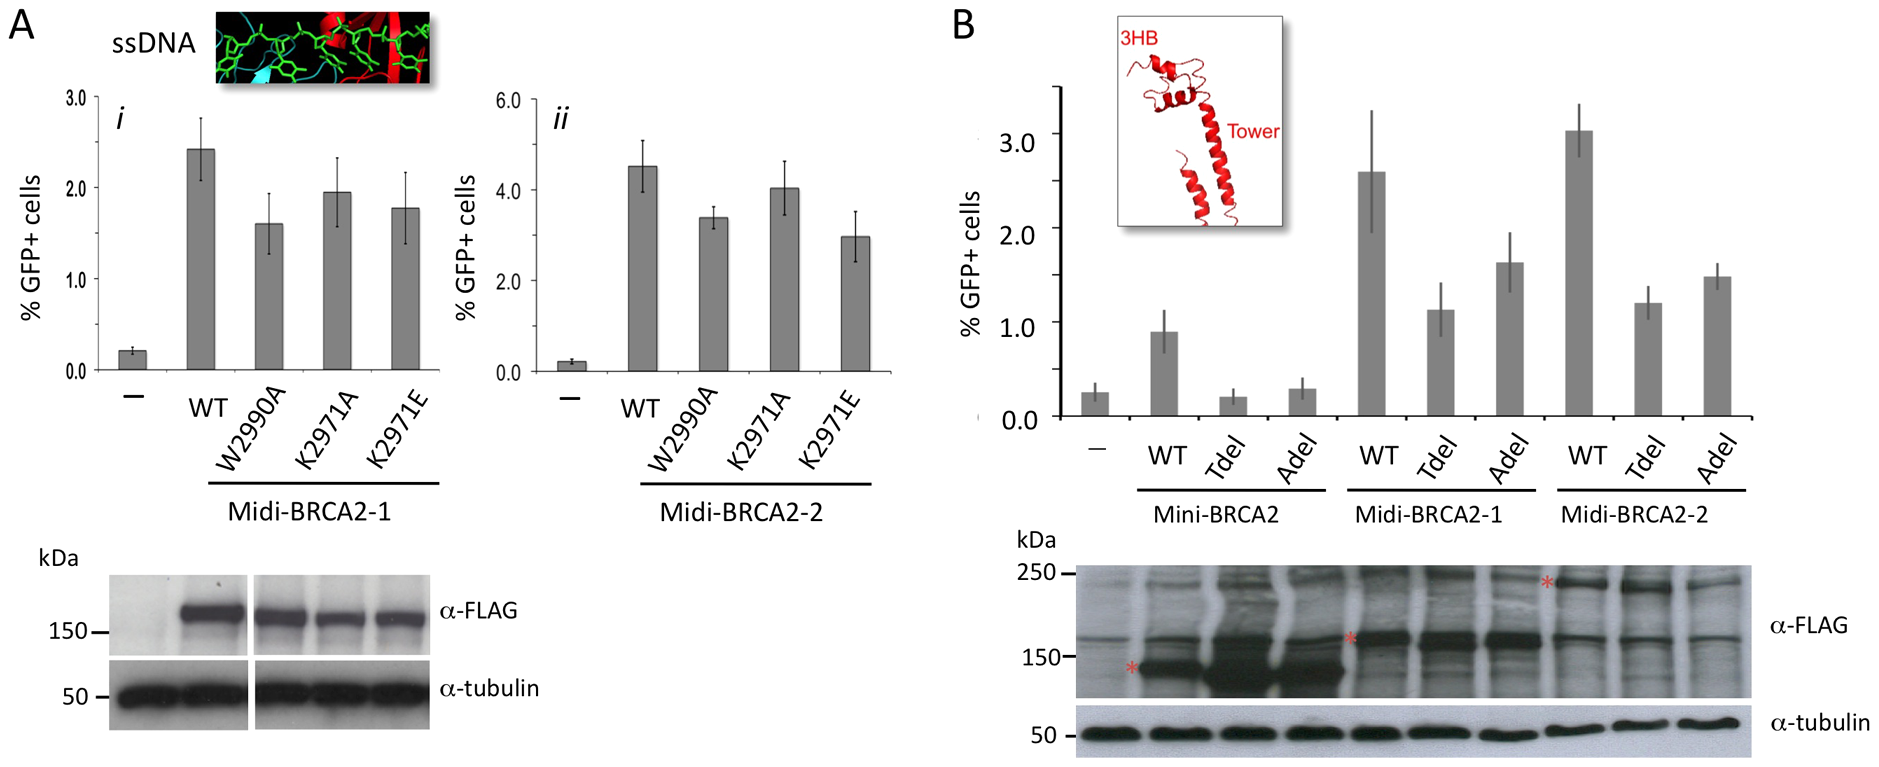 Interaction with PALB2 partially compensates for mutations in the DNA binding domain.